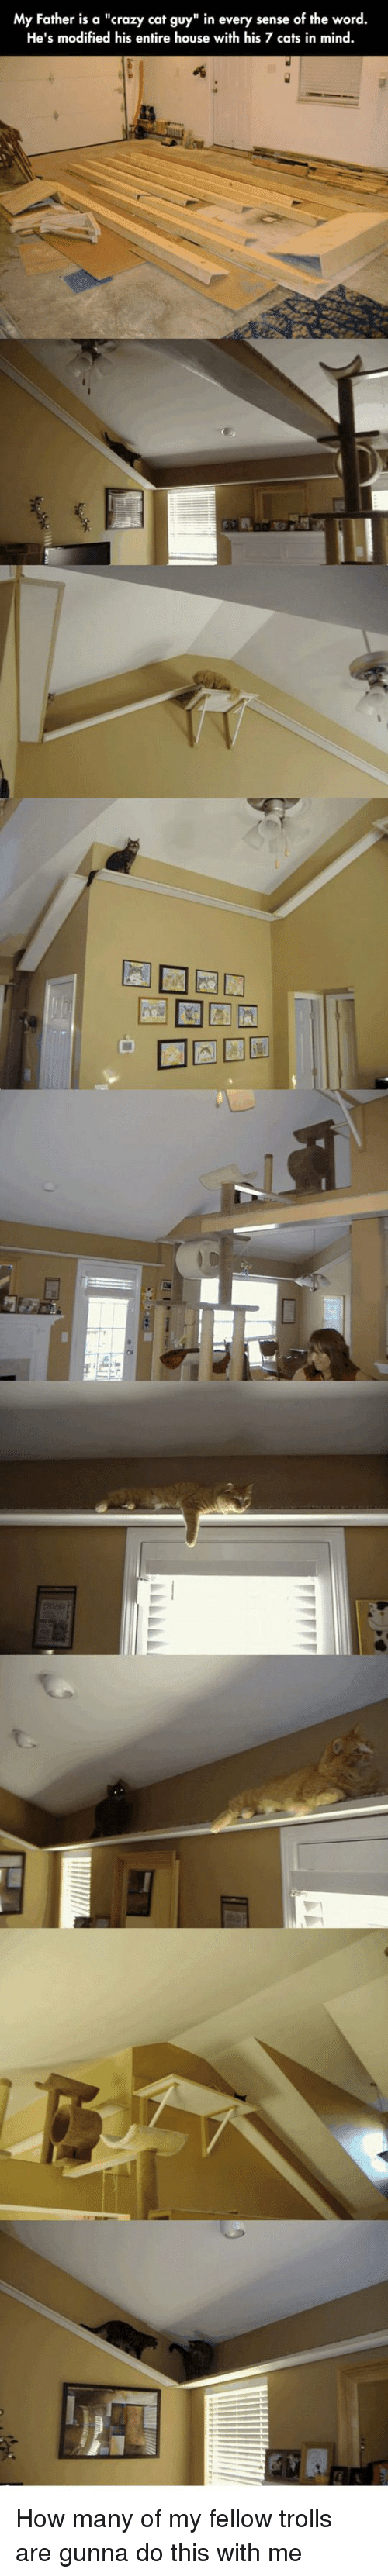 "Cats, Crazy, and House: My Father is a ""crazy cat guy"" in every sense of the word.  He's modified his entire house with his 7 cats in mind How many of my fellow trolls are gunna do this with me"